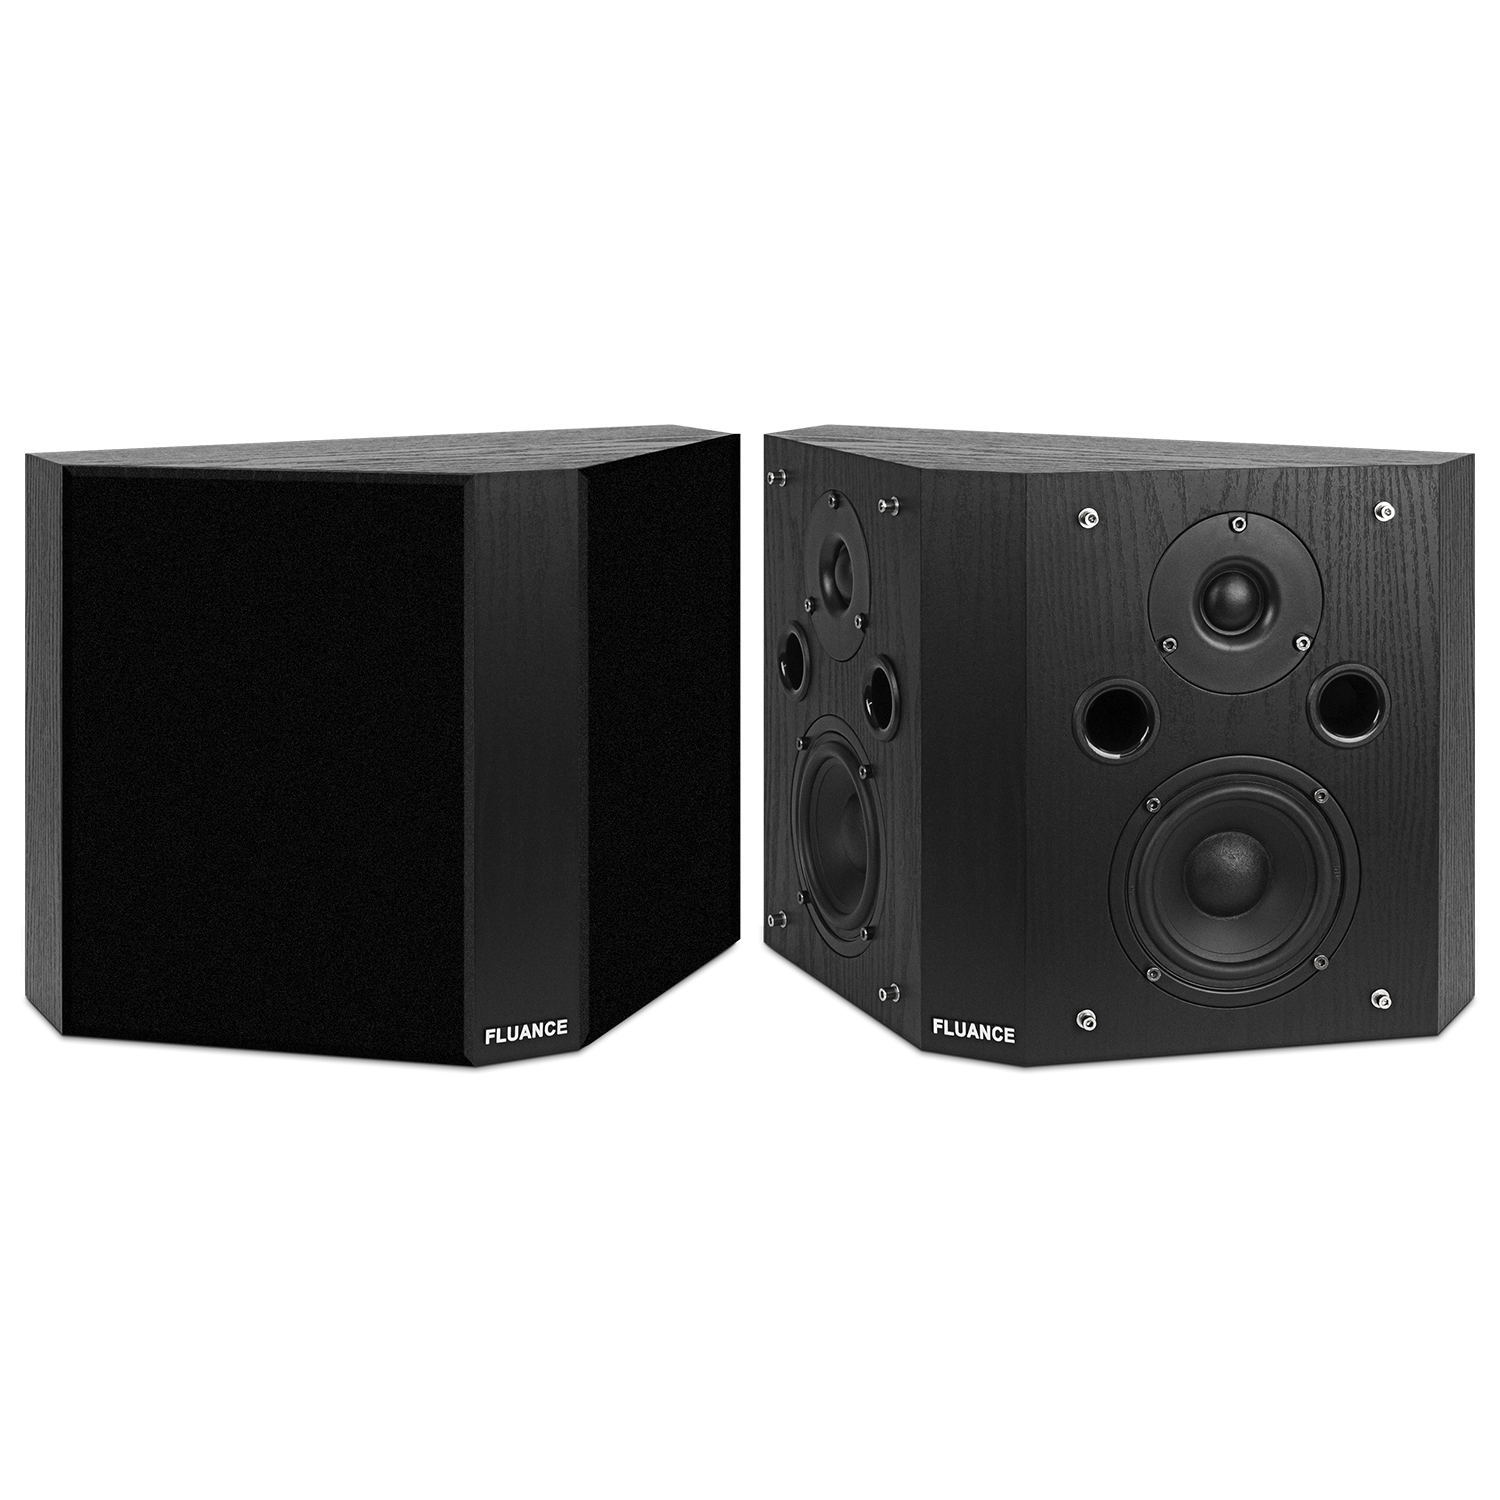 Fluance SXBP High Definition Bipolar Surround Sound Speakers - Black Ash